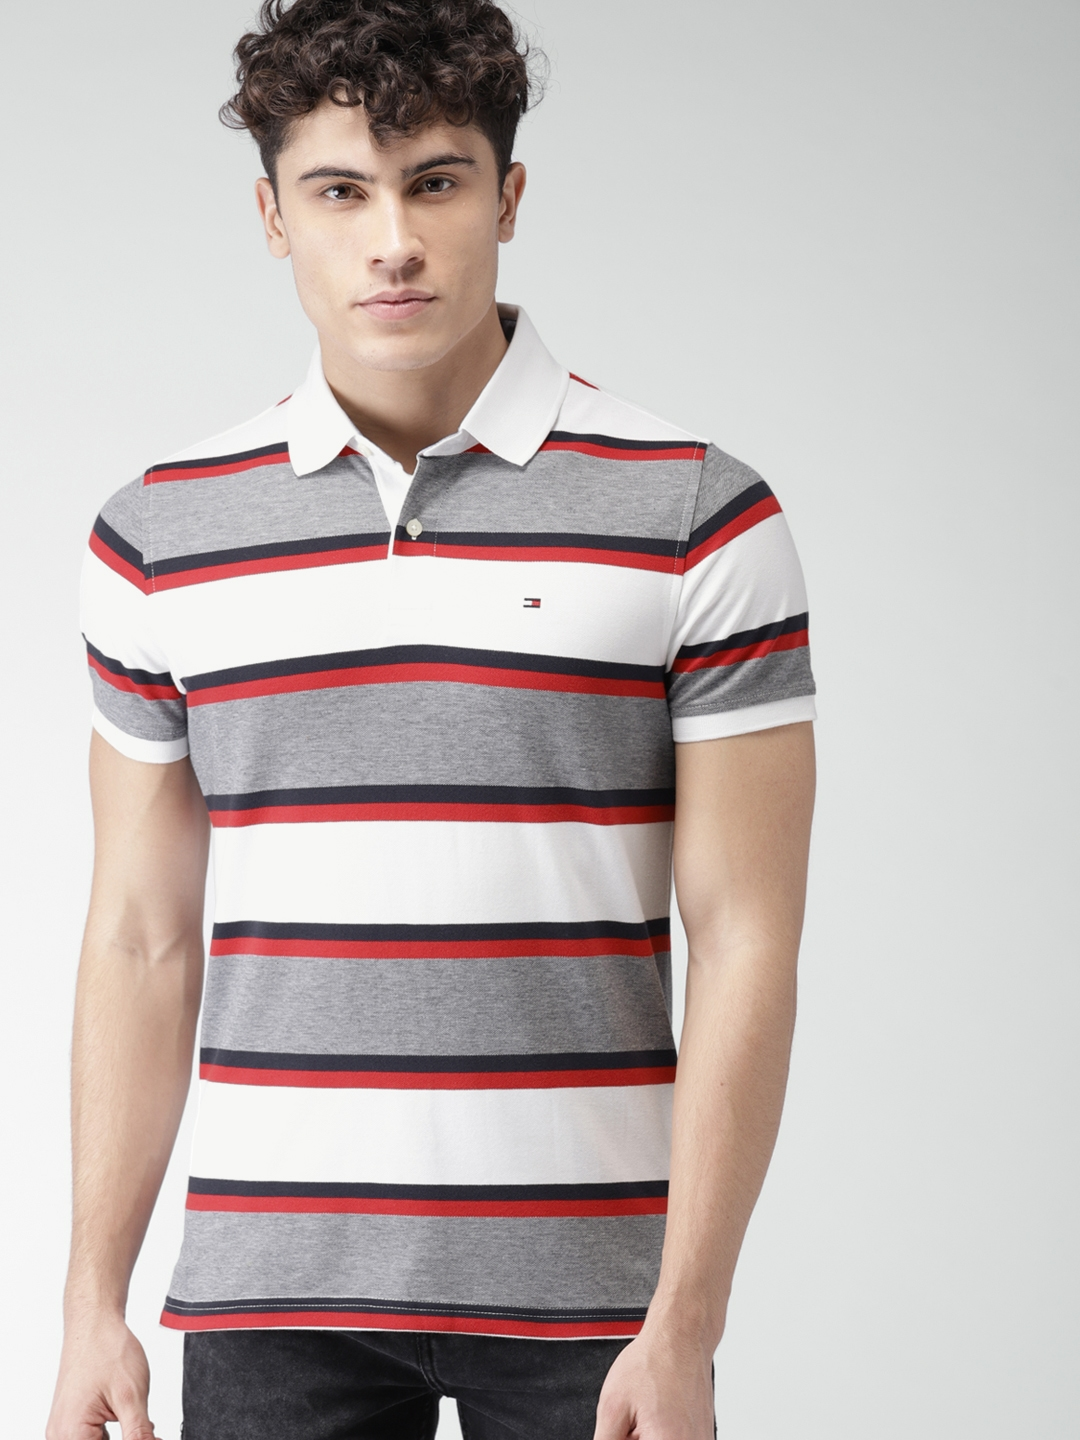 526095c5b Tommy Hilfiger Men White & Navy Slim Fit Striped Polo Collar T-shirt. Best  Price: ...